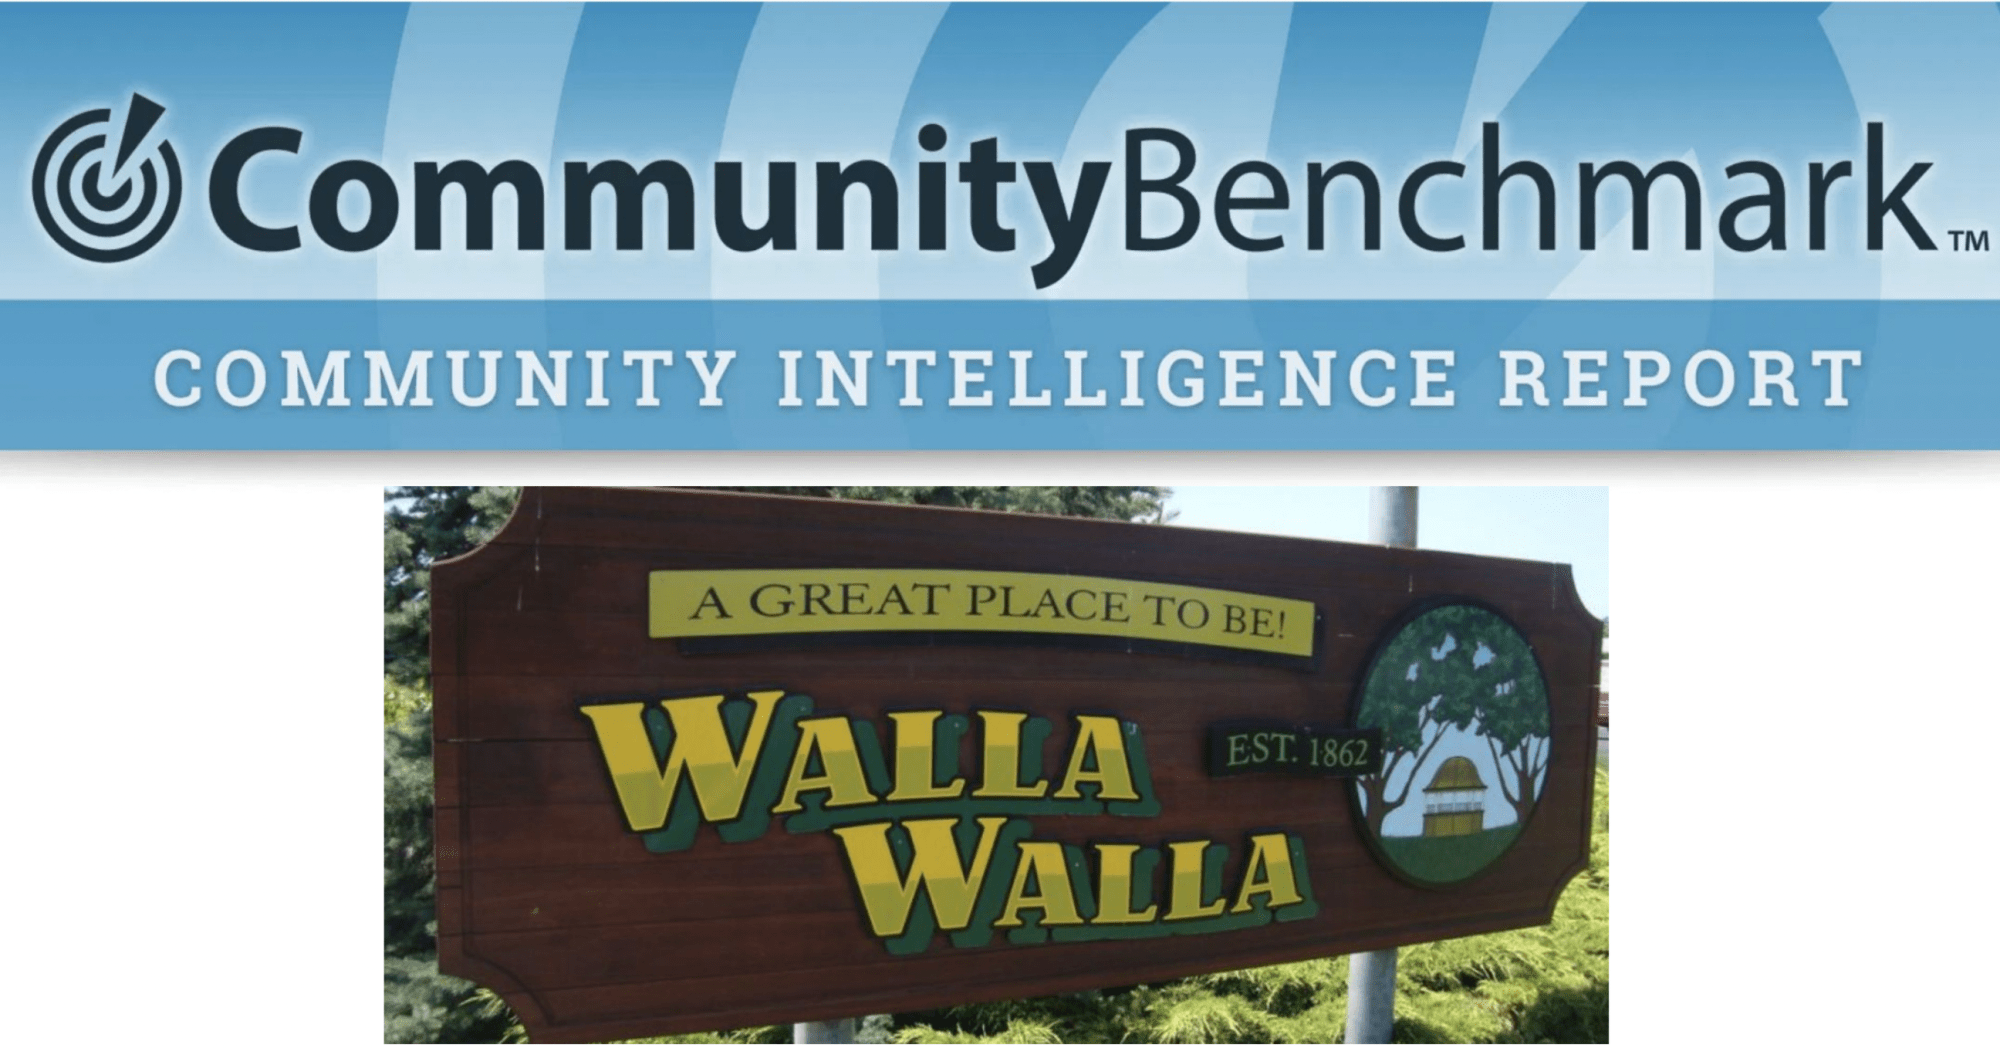 Community Intelligence Report for Walla Walla